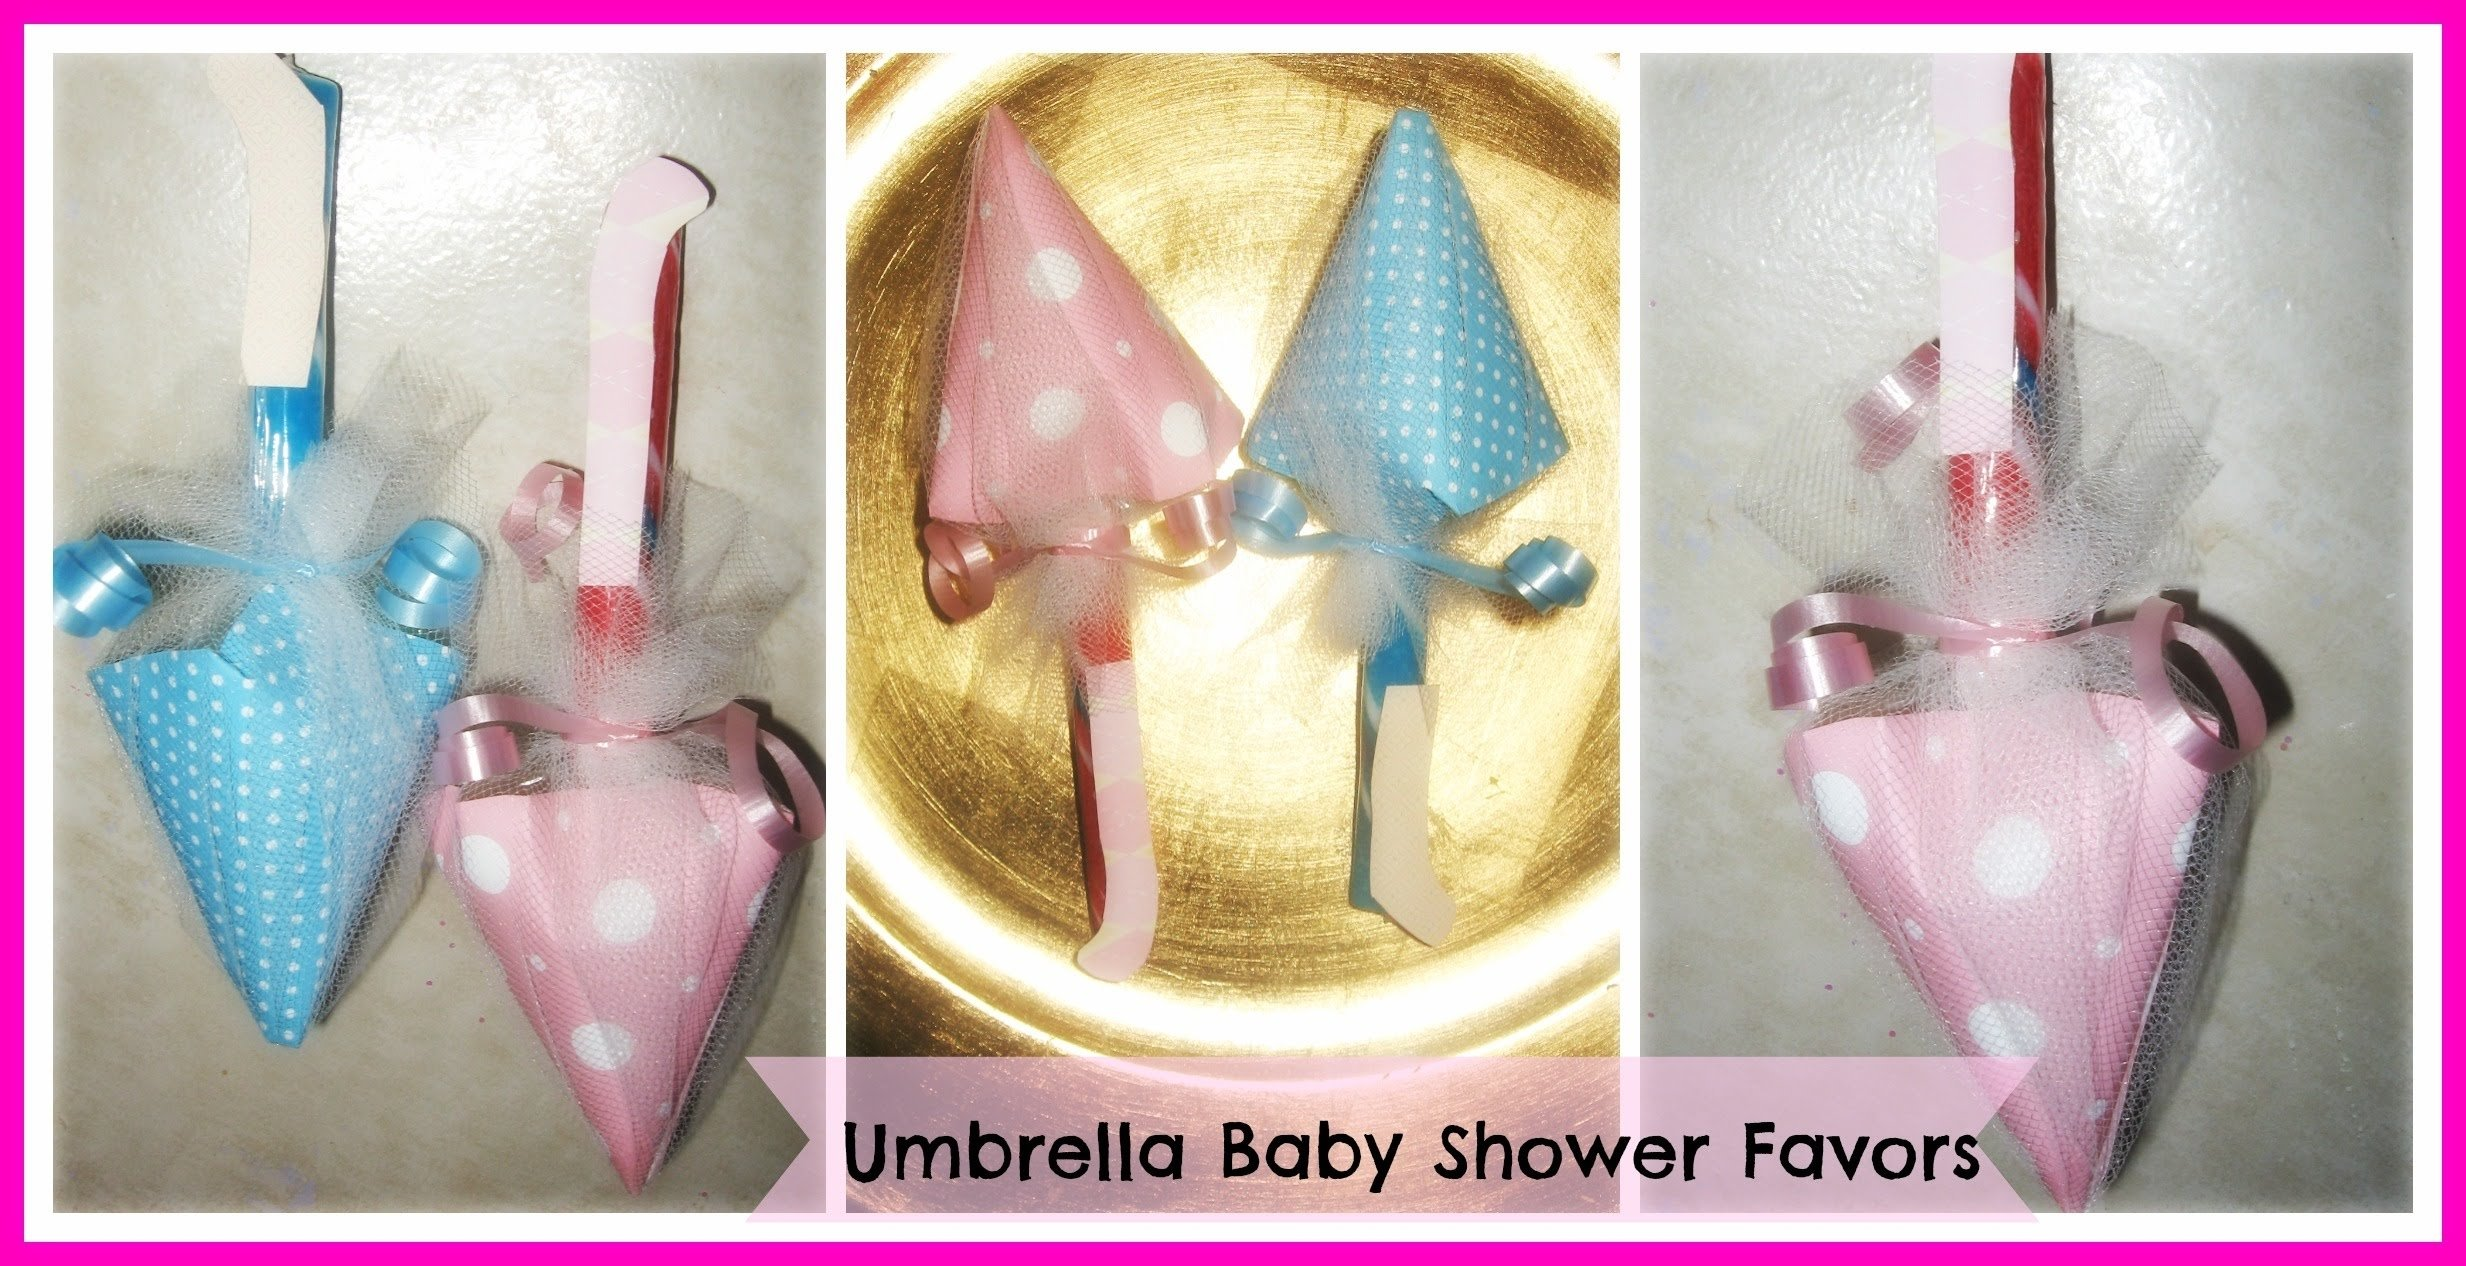 10 Lovable Baby Shower Favors Ideas To Make how to make umbrella baby shower favors tutorial diy candy umbrella